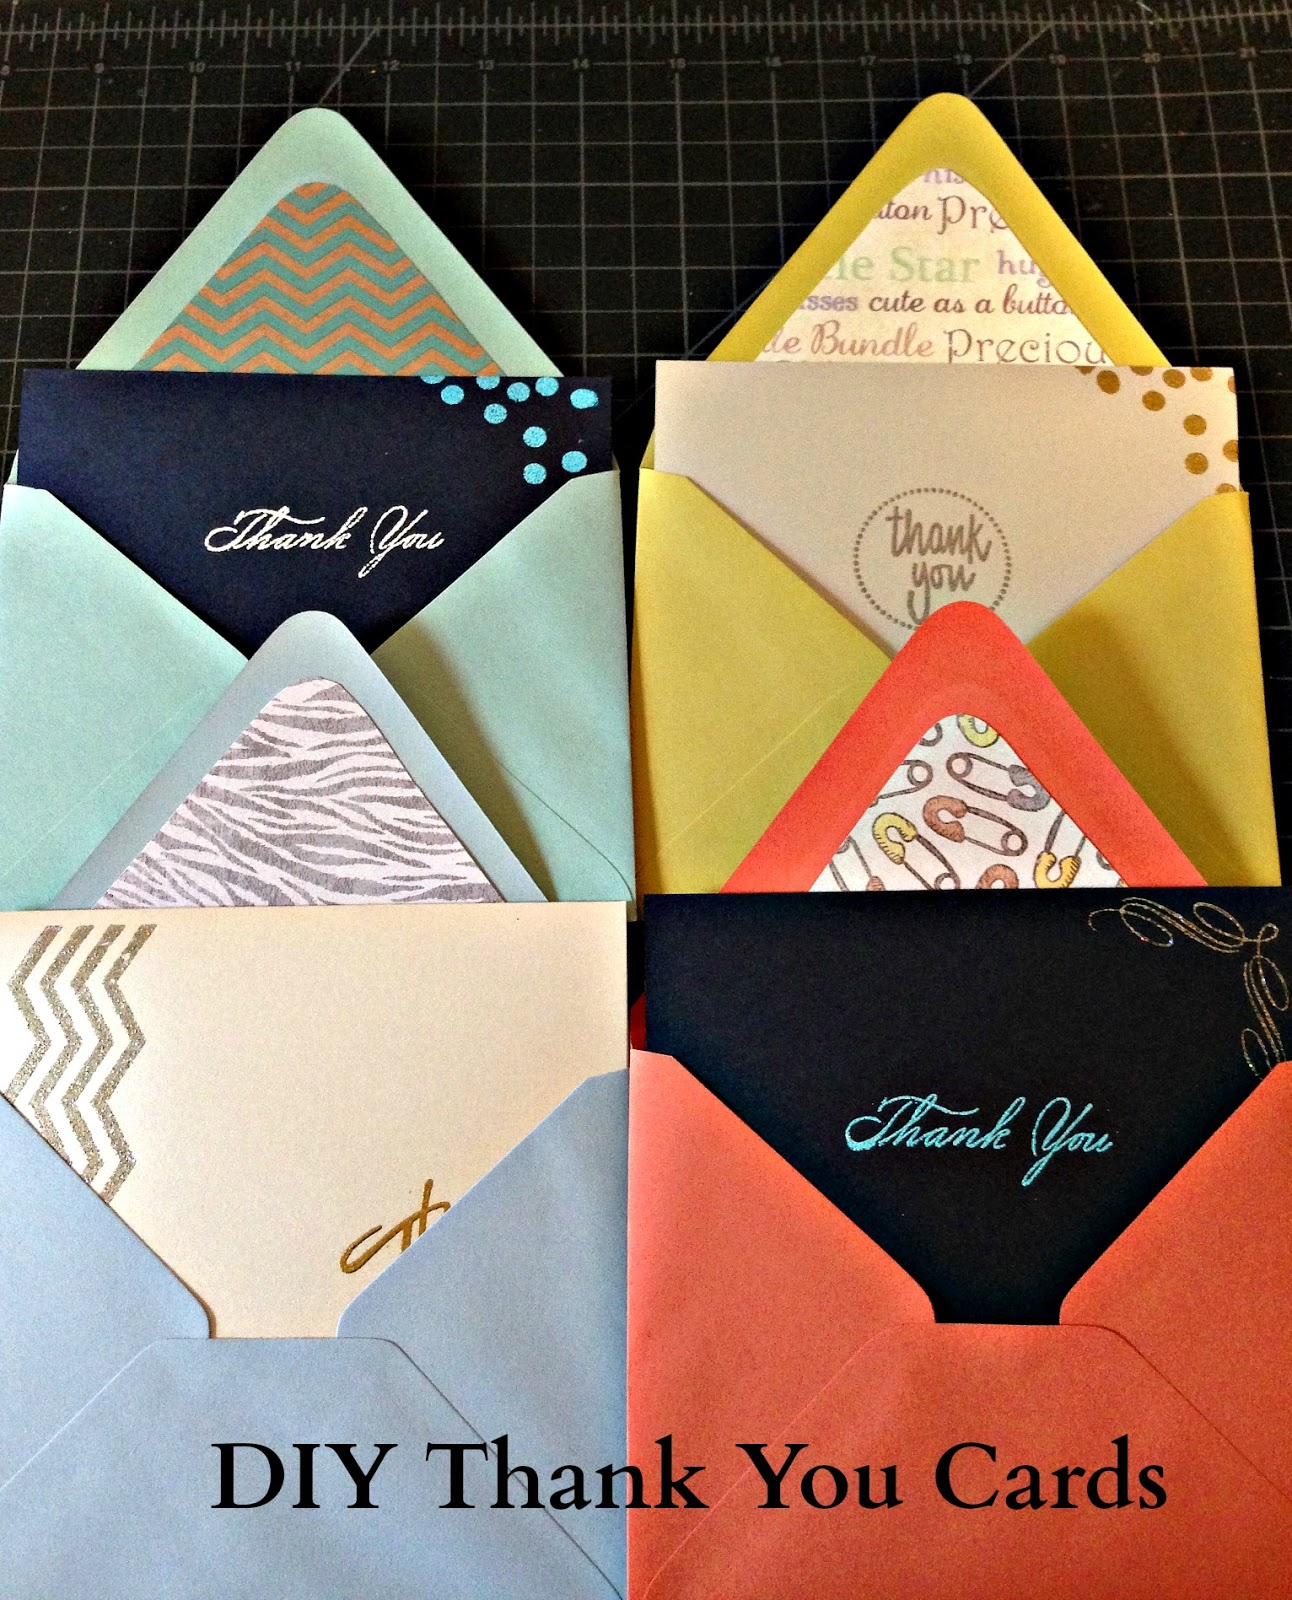 Summertime Crafting Diy Homemade Thank You Cards